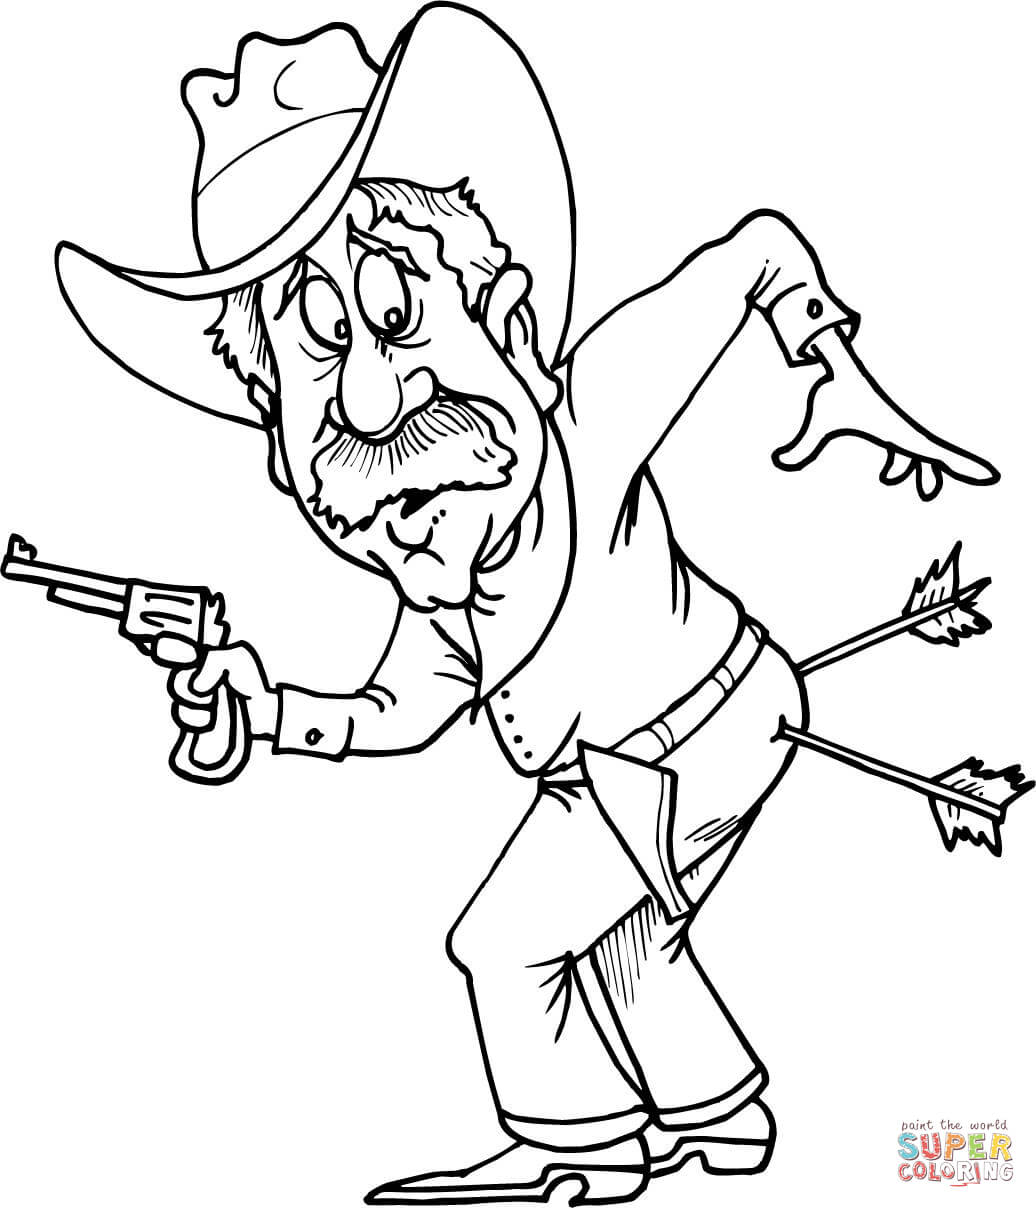 1036x1208 Cowboy With Two Arrows In Butt Coloring Page Free Printable